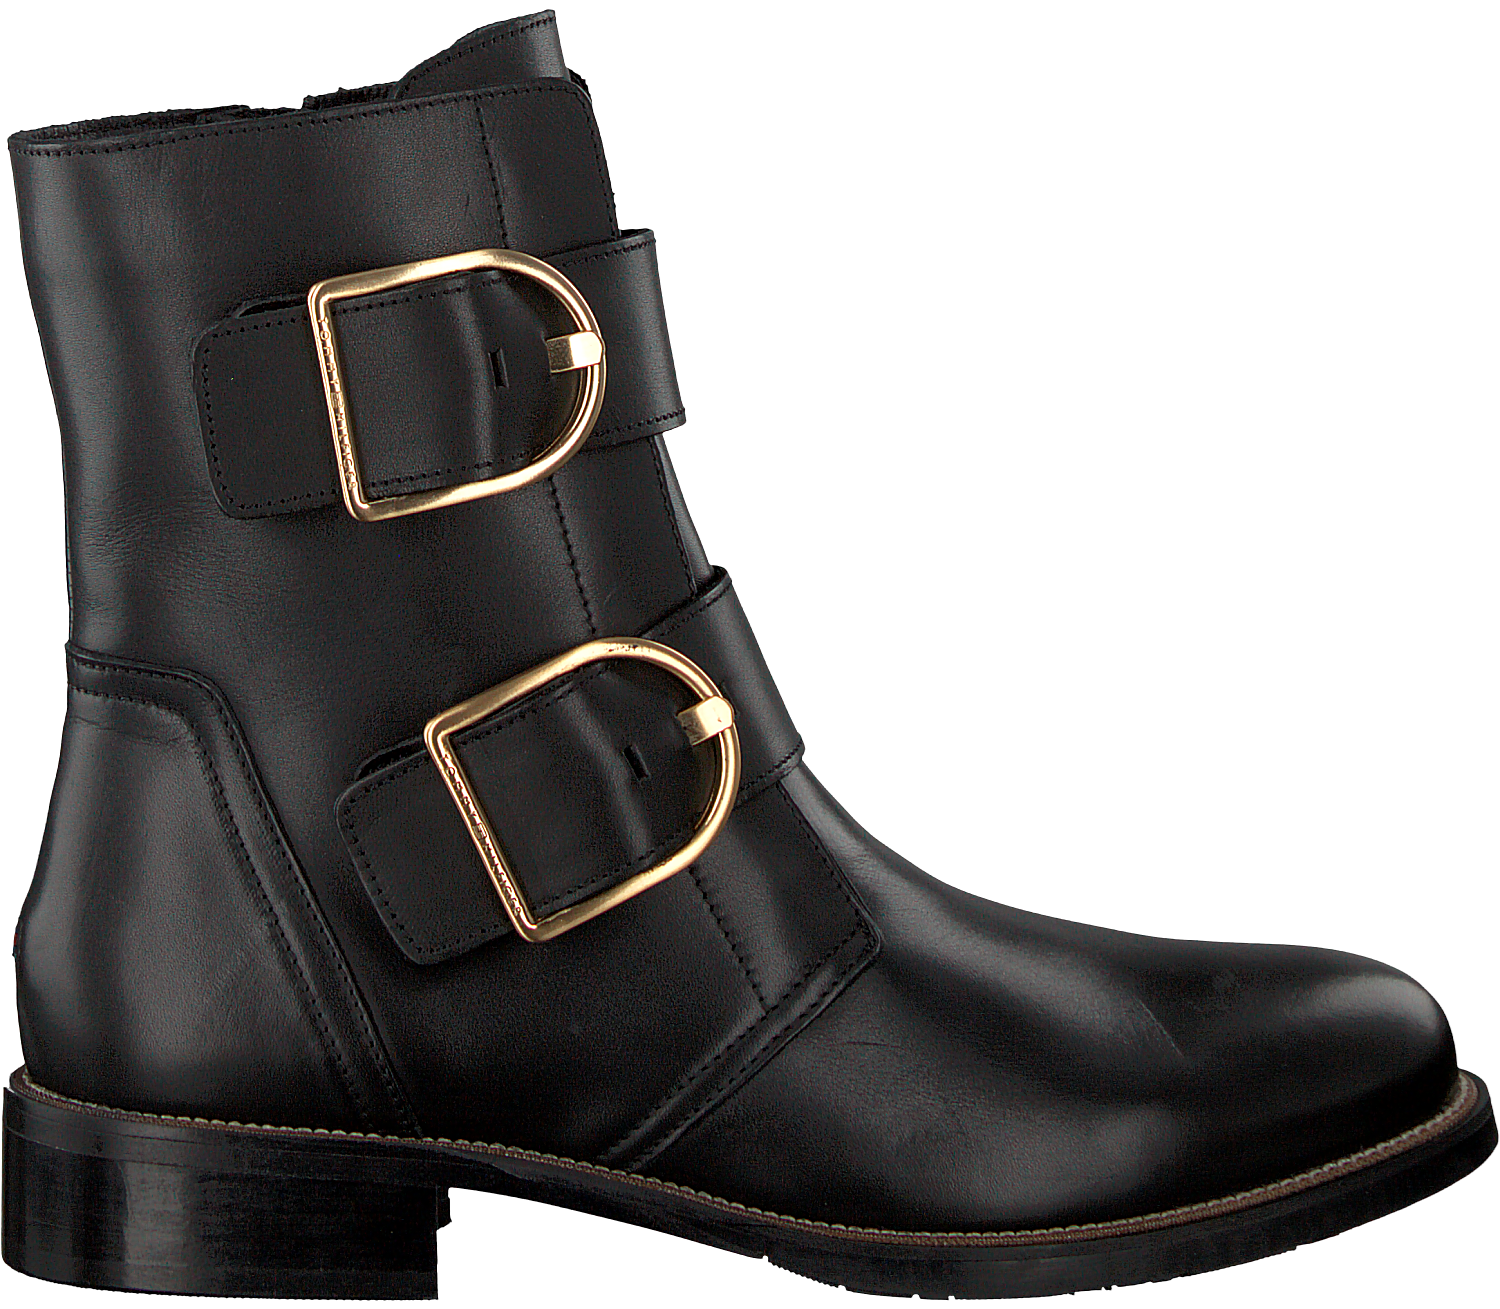 fde54b7dba9fc Black TOMMY HILFIGER Chelsea boots OVERSIZED BUCKLE FLAT BOOT - large. Next